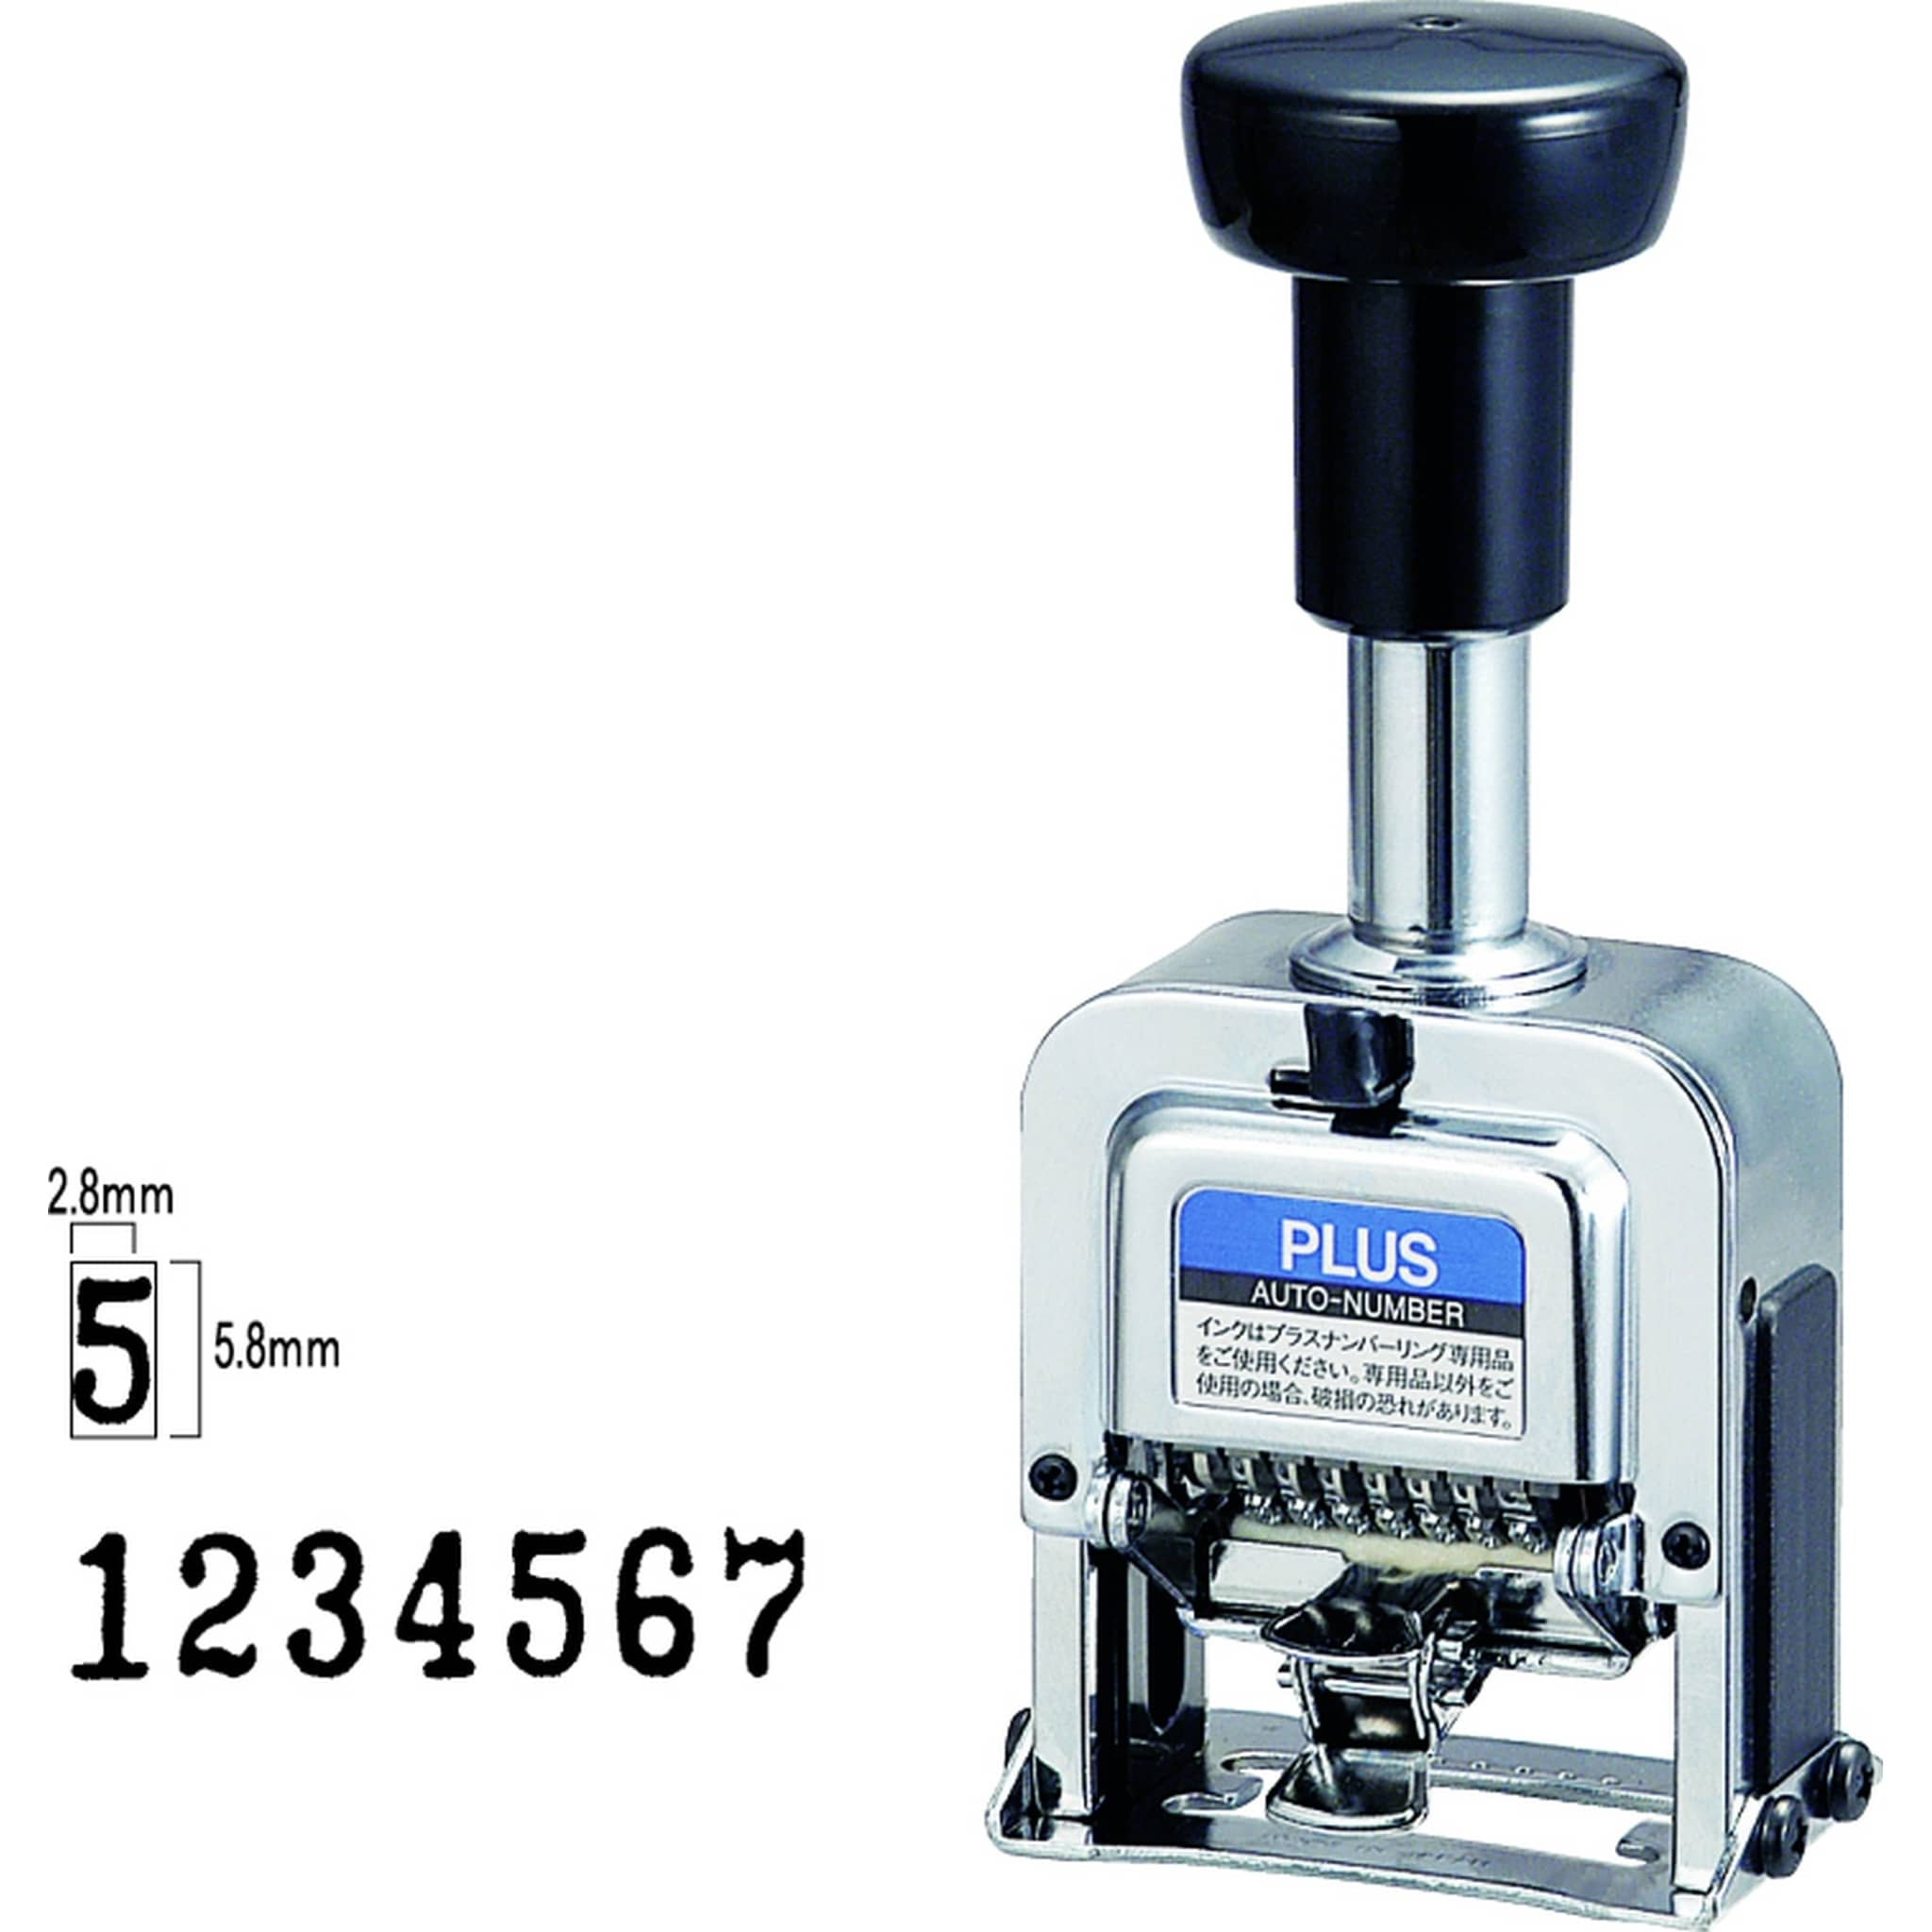 PLUS F 7 Wheel Automatic Numbering Machine $223.65 incl. gst